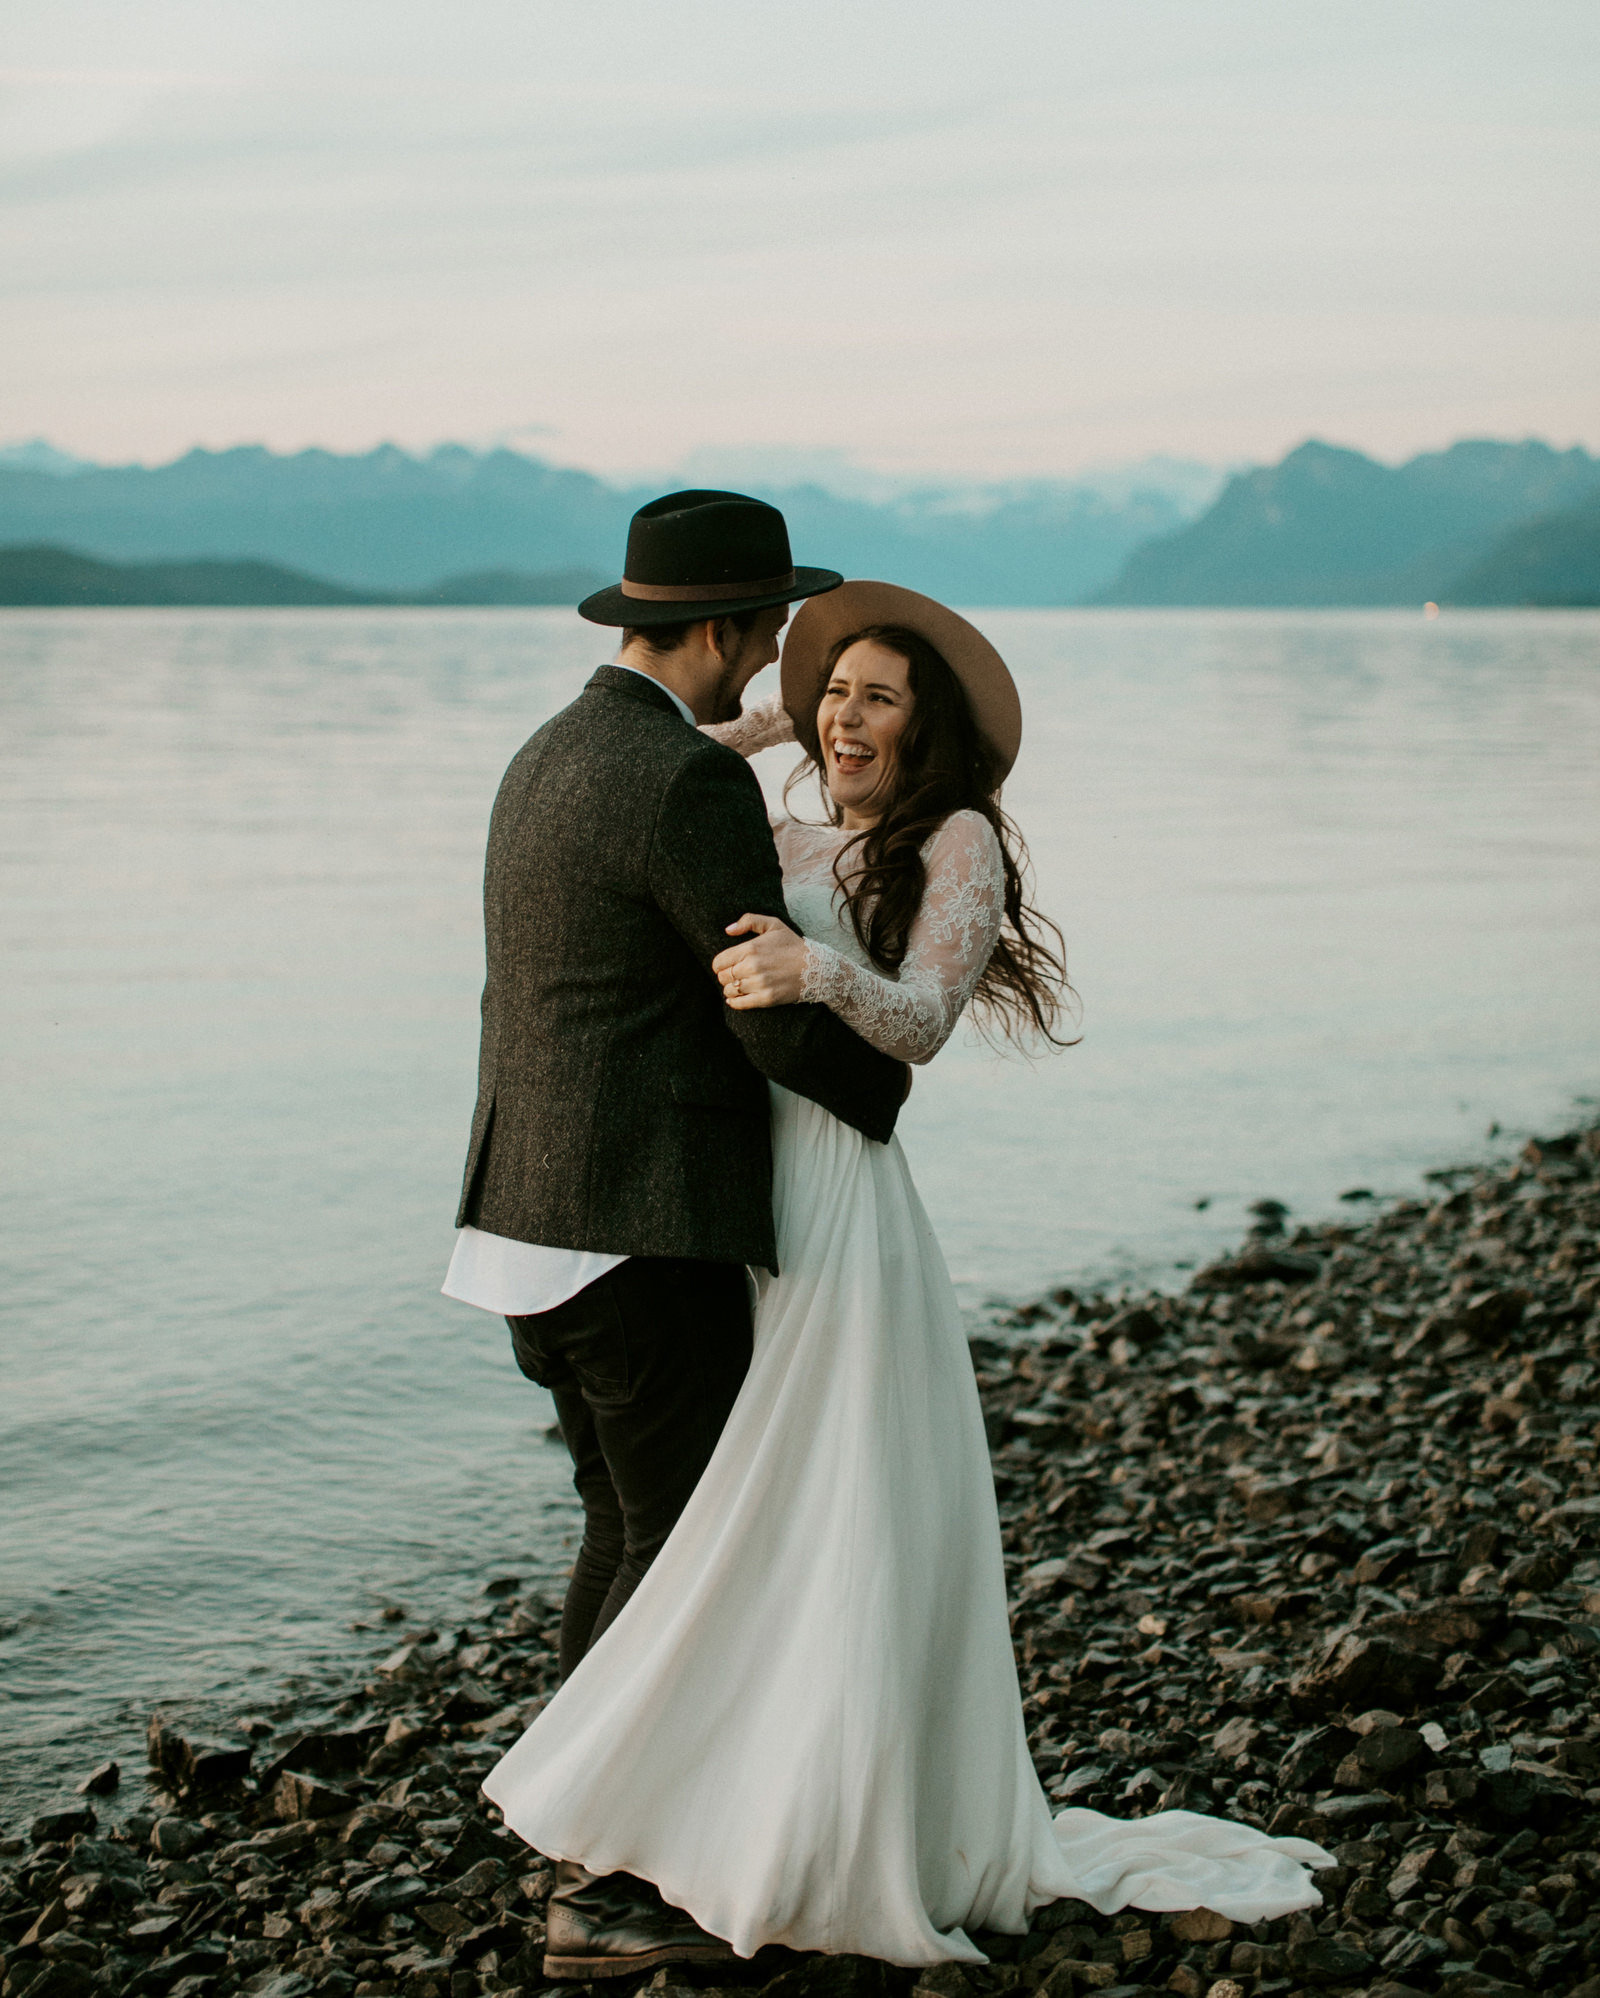 athena-and-camron-alaska-elopement-wedding-inspiration-india-earl-athena-grace-glacier-lagoon-wedding63